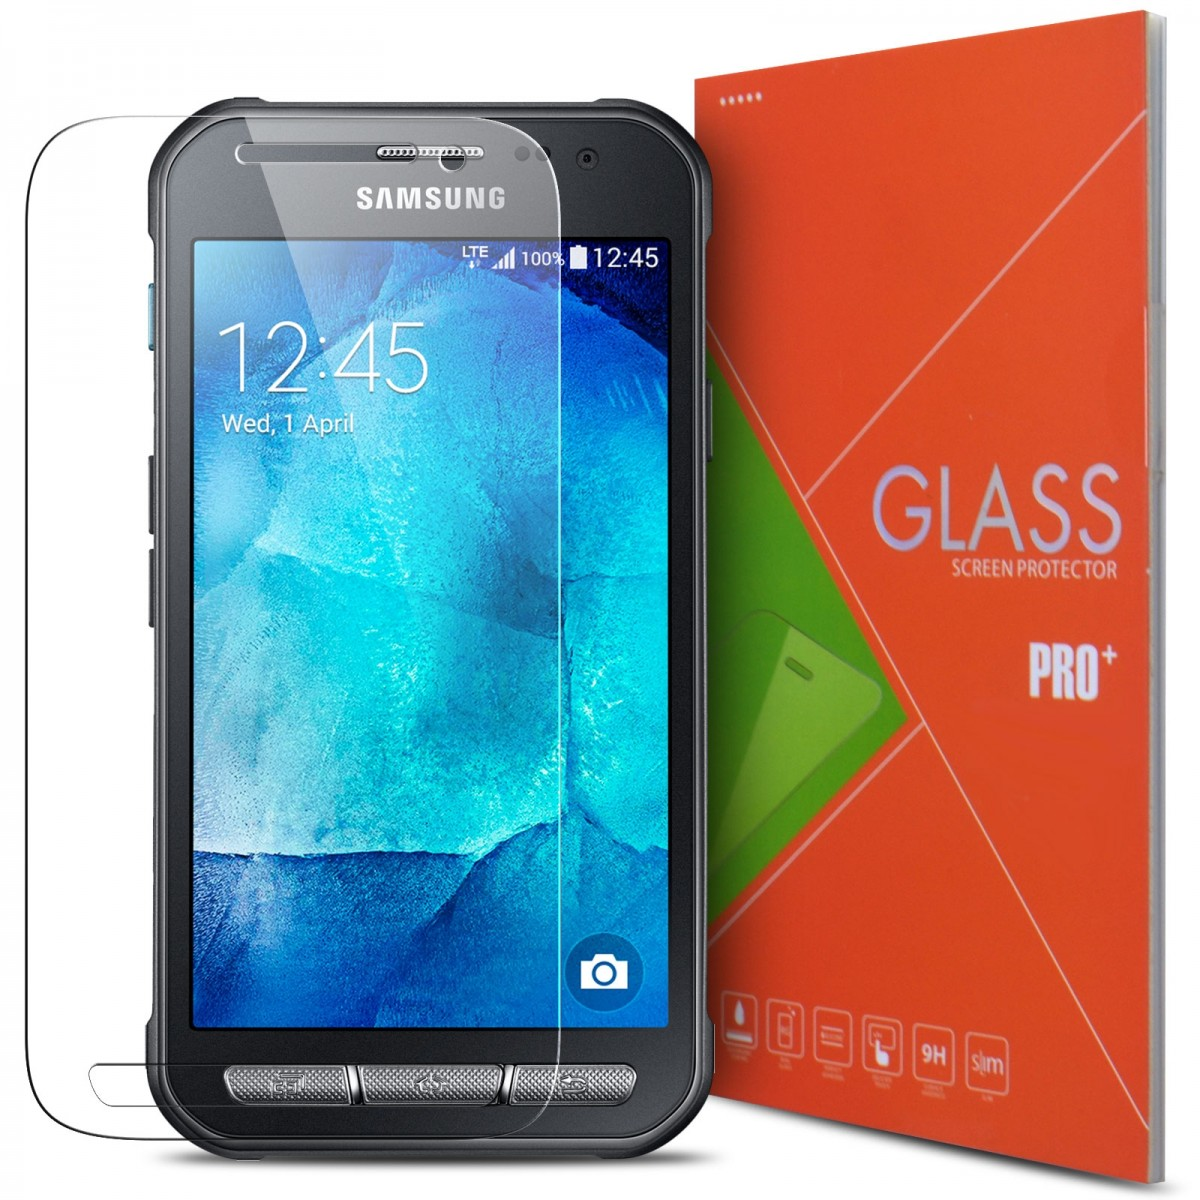 ScreenShield Samsung Galaxy Xcover 3 Tempered Glass SAM-TGG388-D